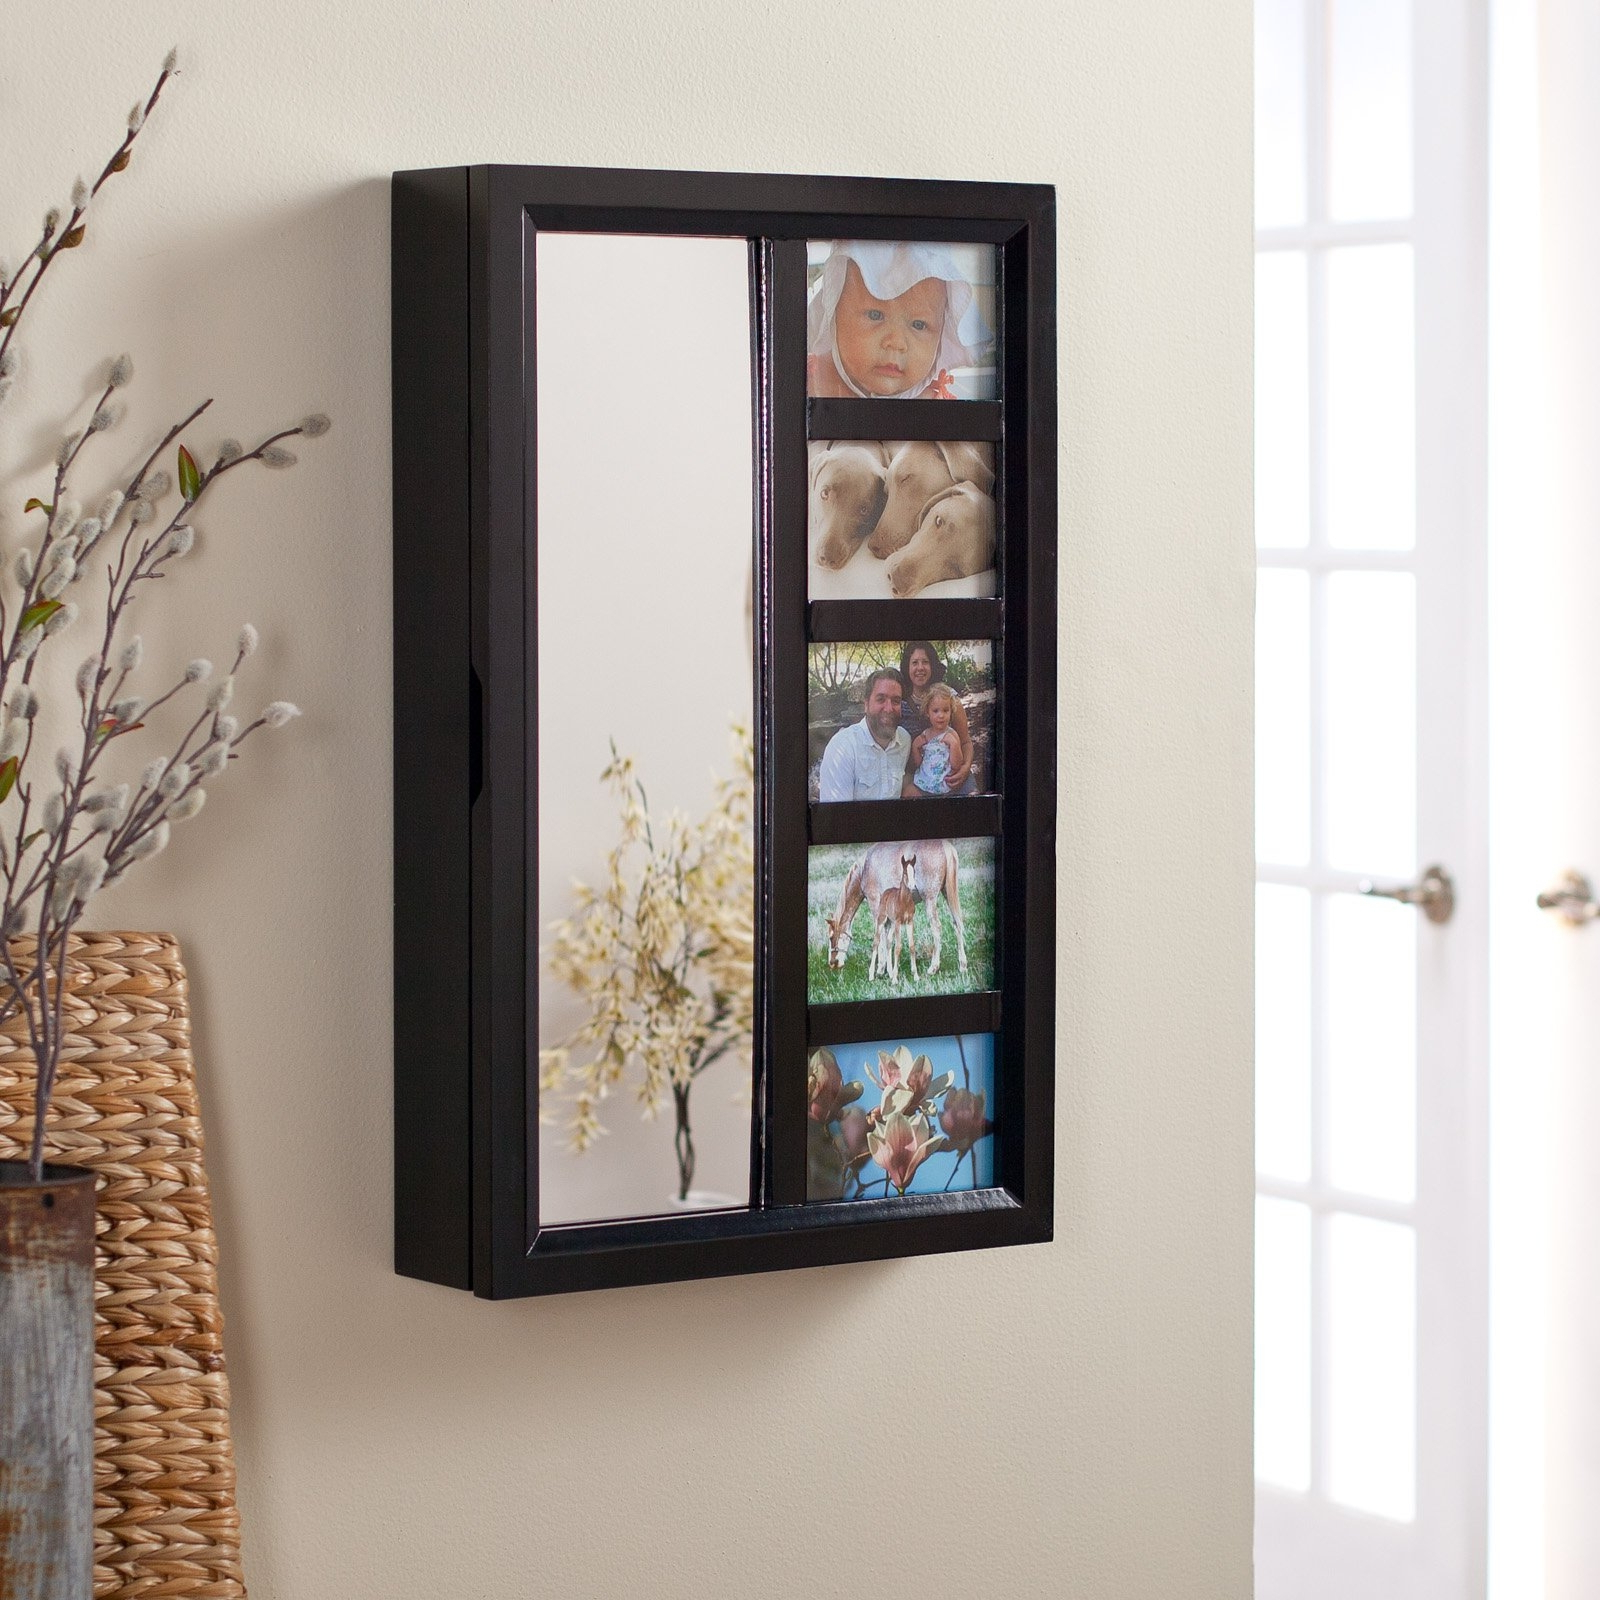 Jewelry Box Wall Mirrors Inside Latest Wall Mount Jewelry Armoire Mirror Black (View 6 of 20)